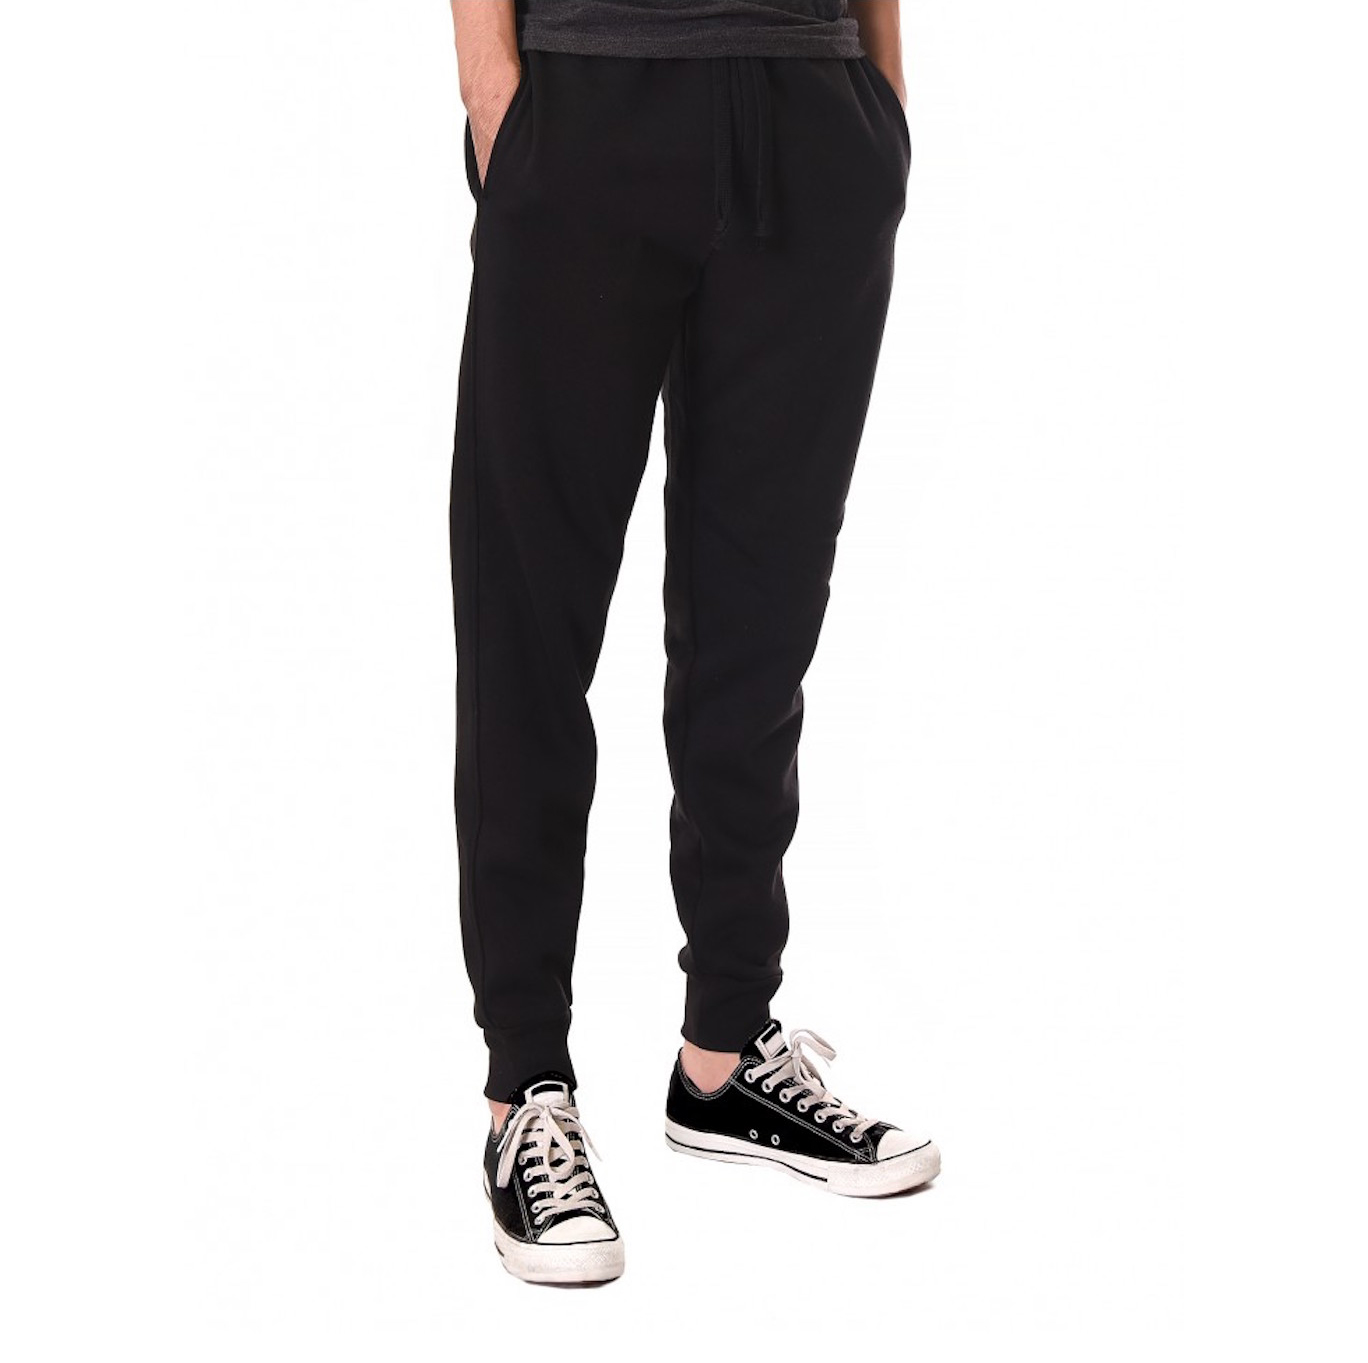 22f809b06 Men's Sweatpants Jogger w/ Pockets and Drawstring Casual Active ...